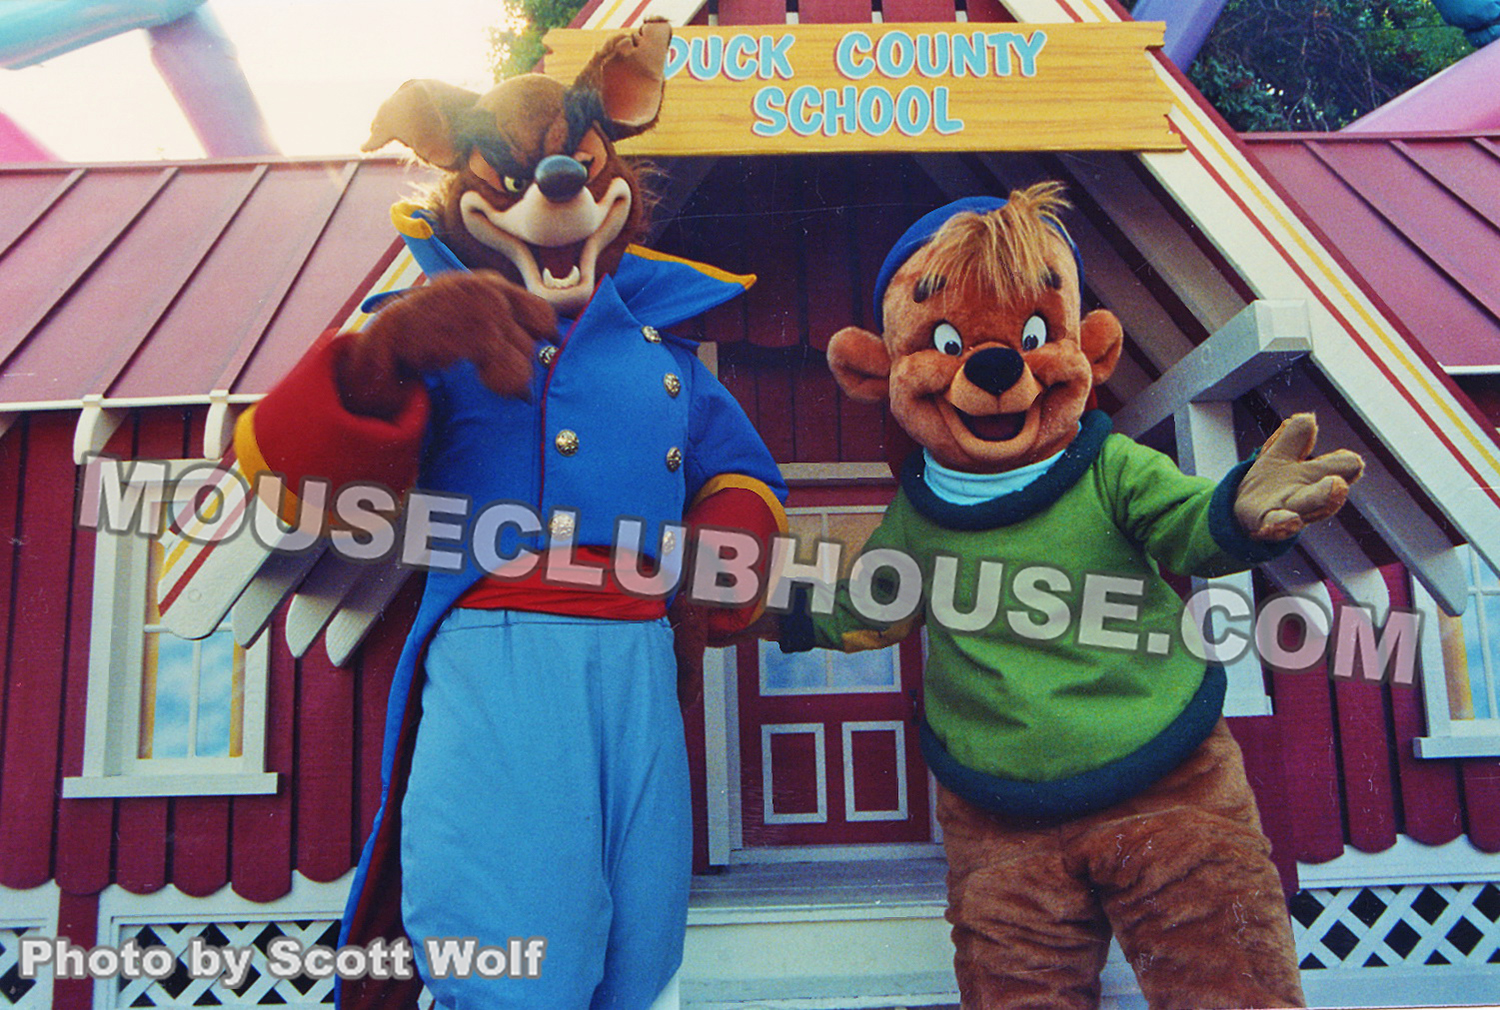 Mixing up shows, characters from TaleSpin pose in front of the DuckTales school in Disneyland